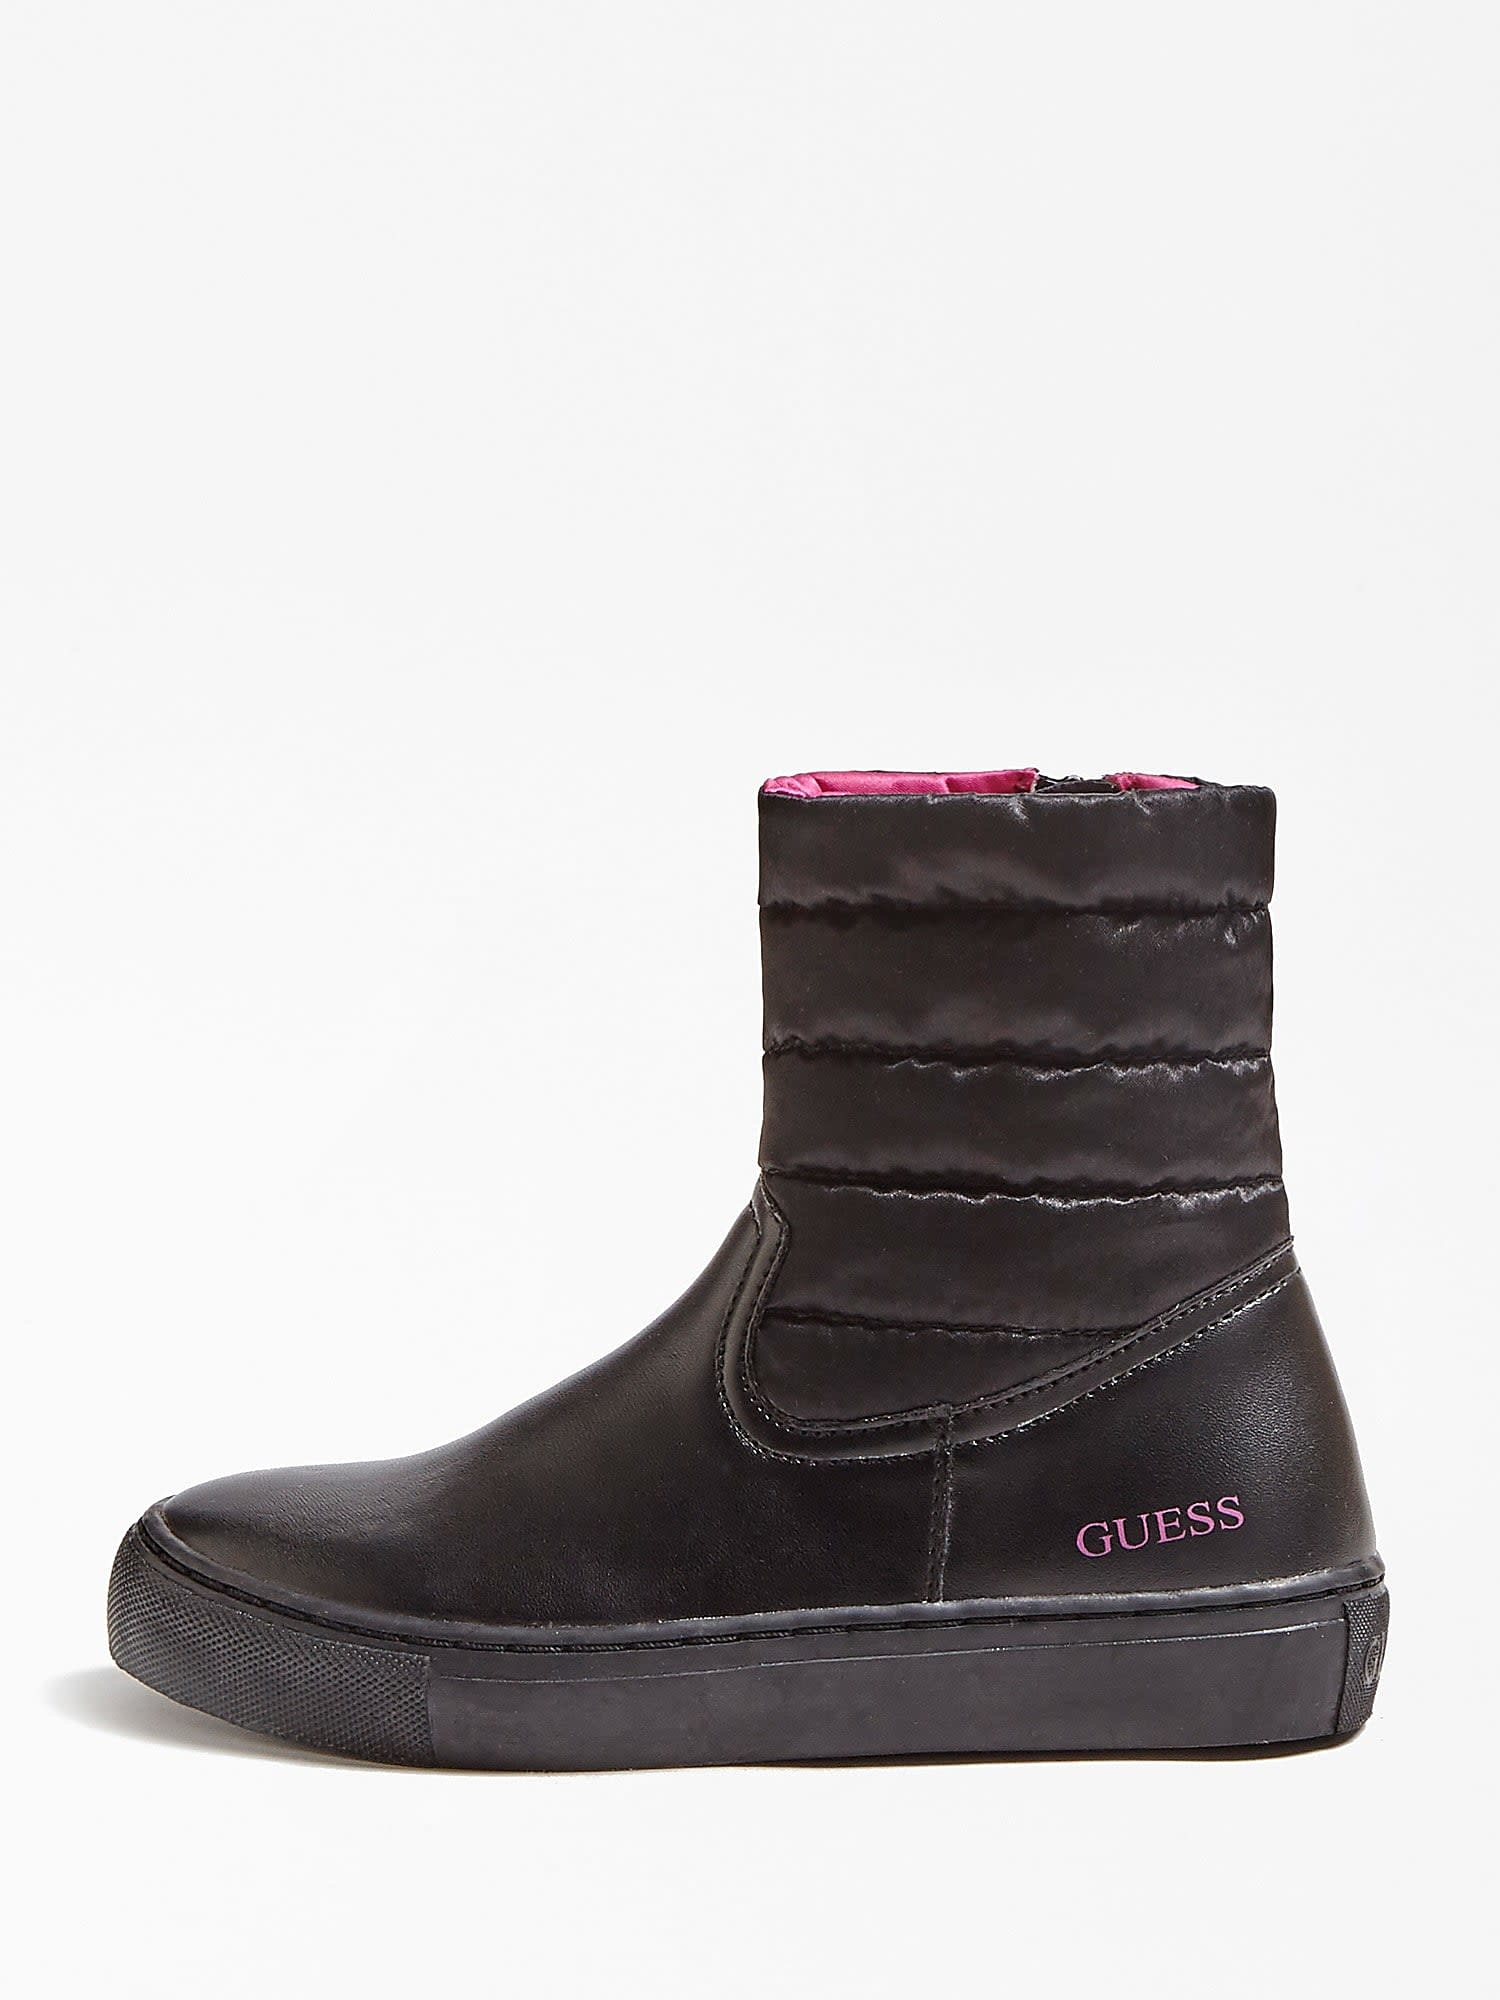 Guess Black Boot